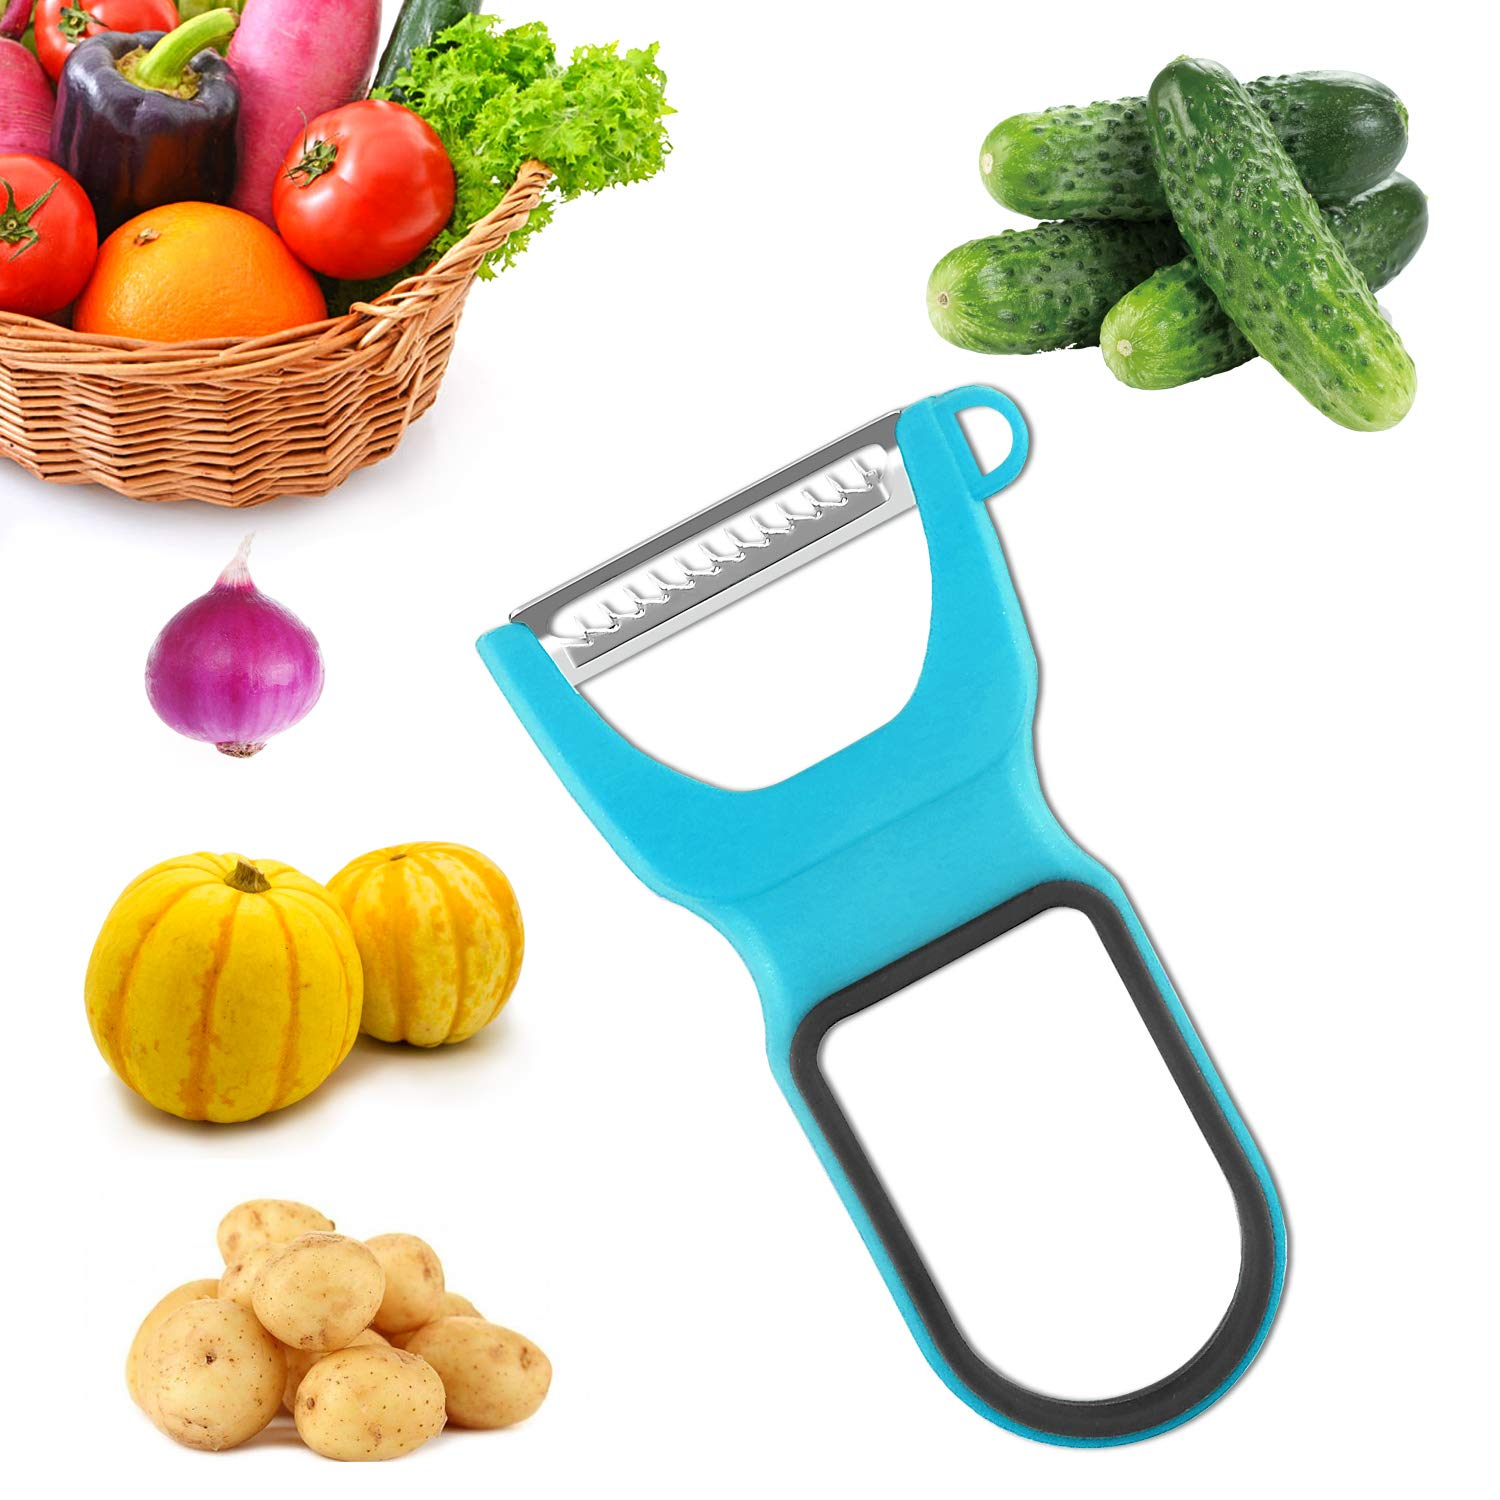 3pcs Kitchen Trio Vegetable Peeler Stainless Steel Blades with Non-Slip Handle